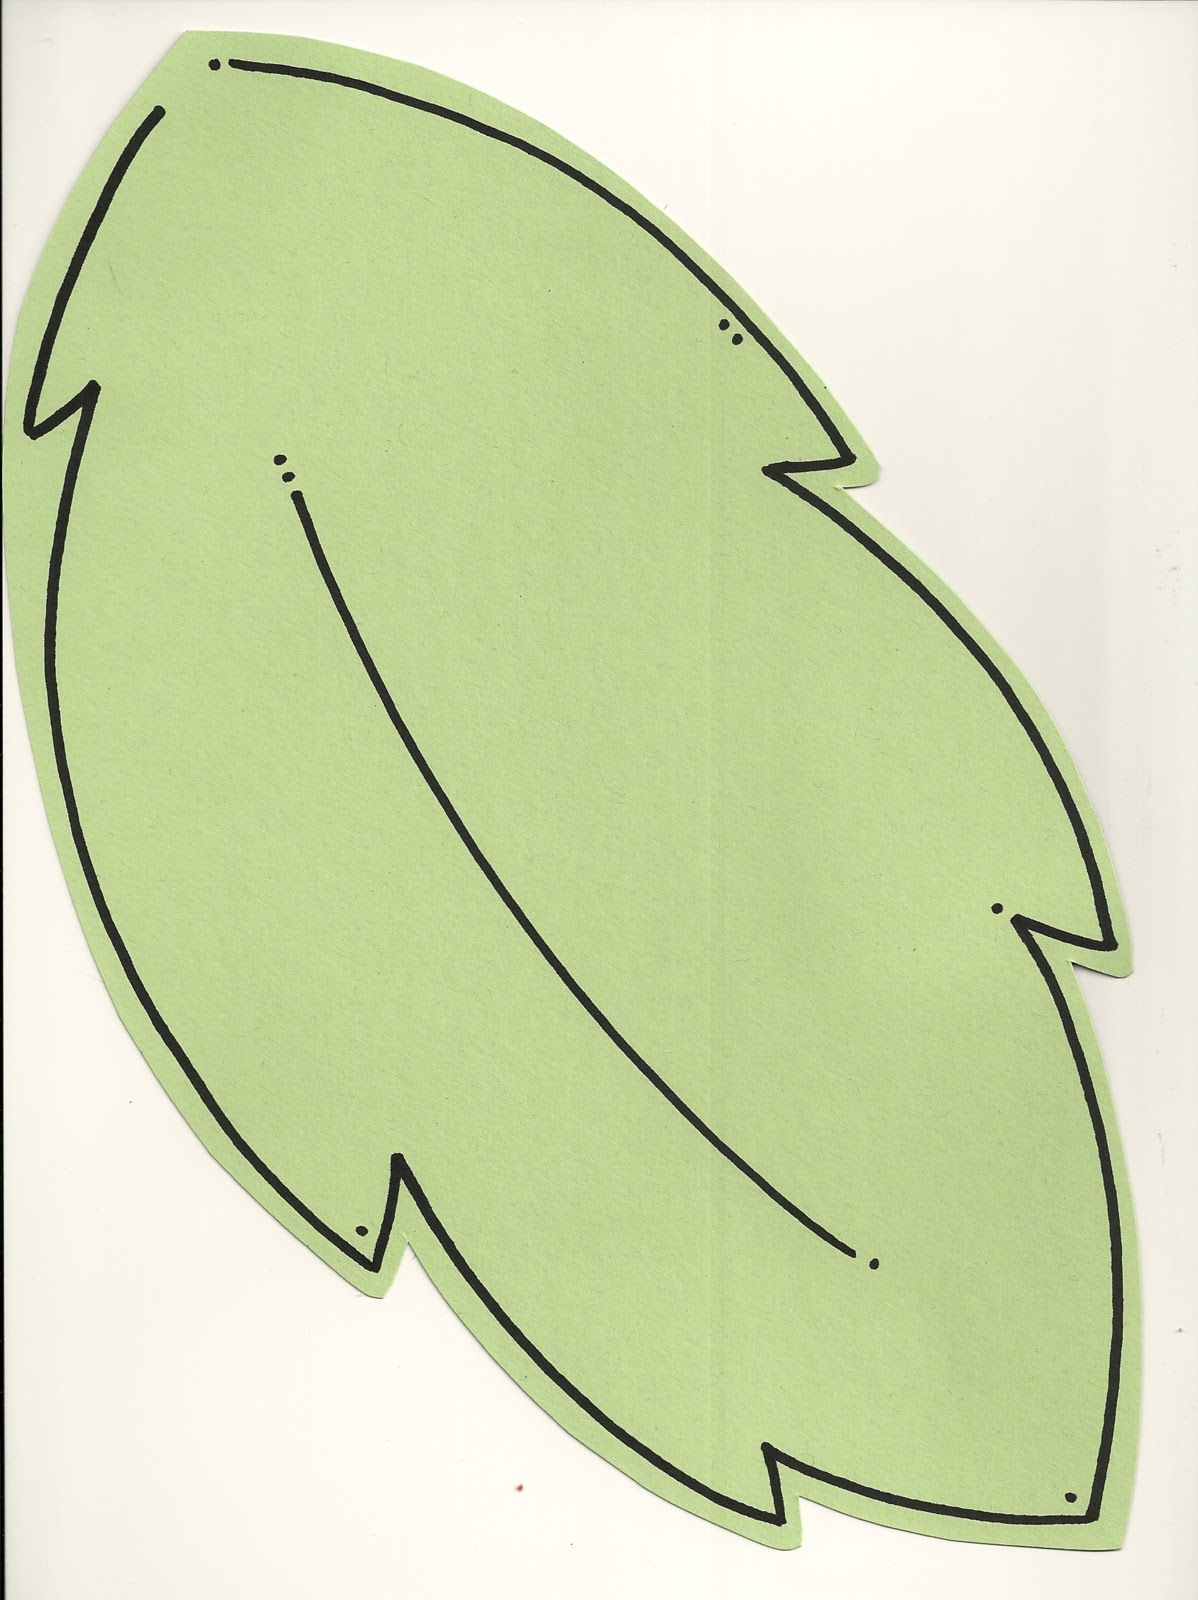 Leaf Template with Lines